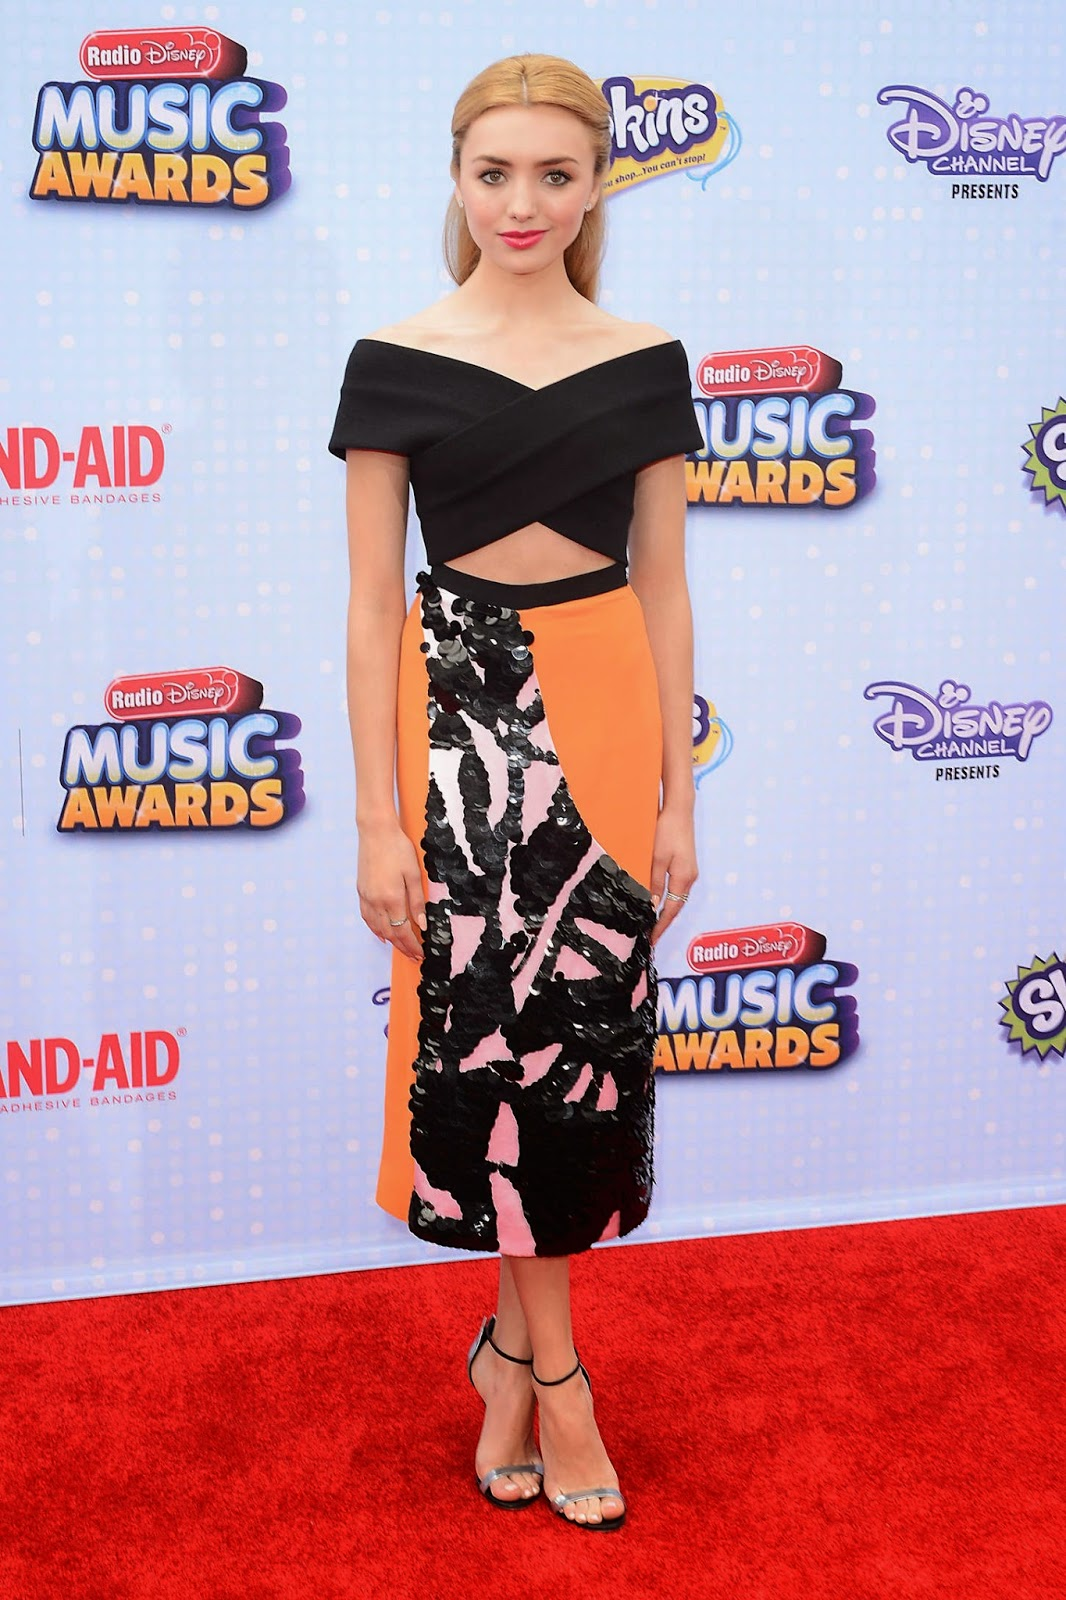 Peyton Roi List in an embellished midi skirt and off-shoulder top at the 2015 Radio Disney Music Awards in LA